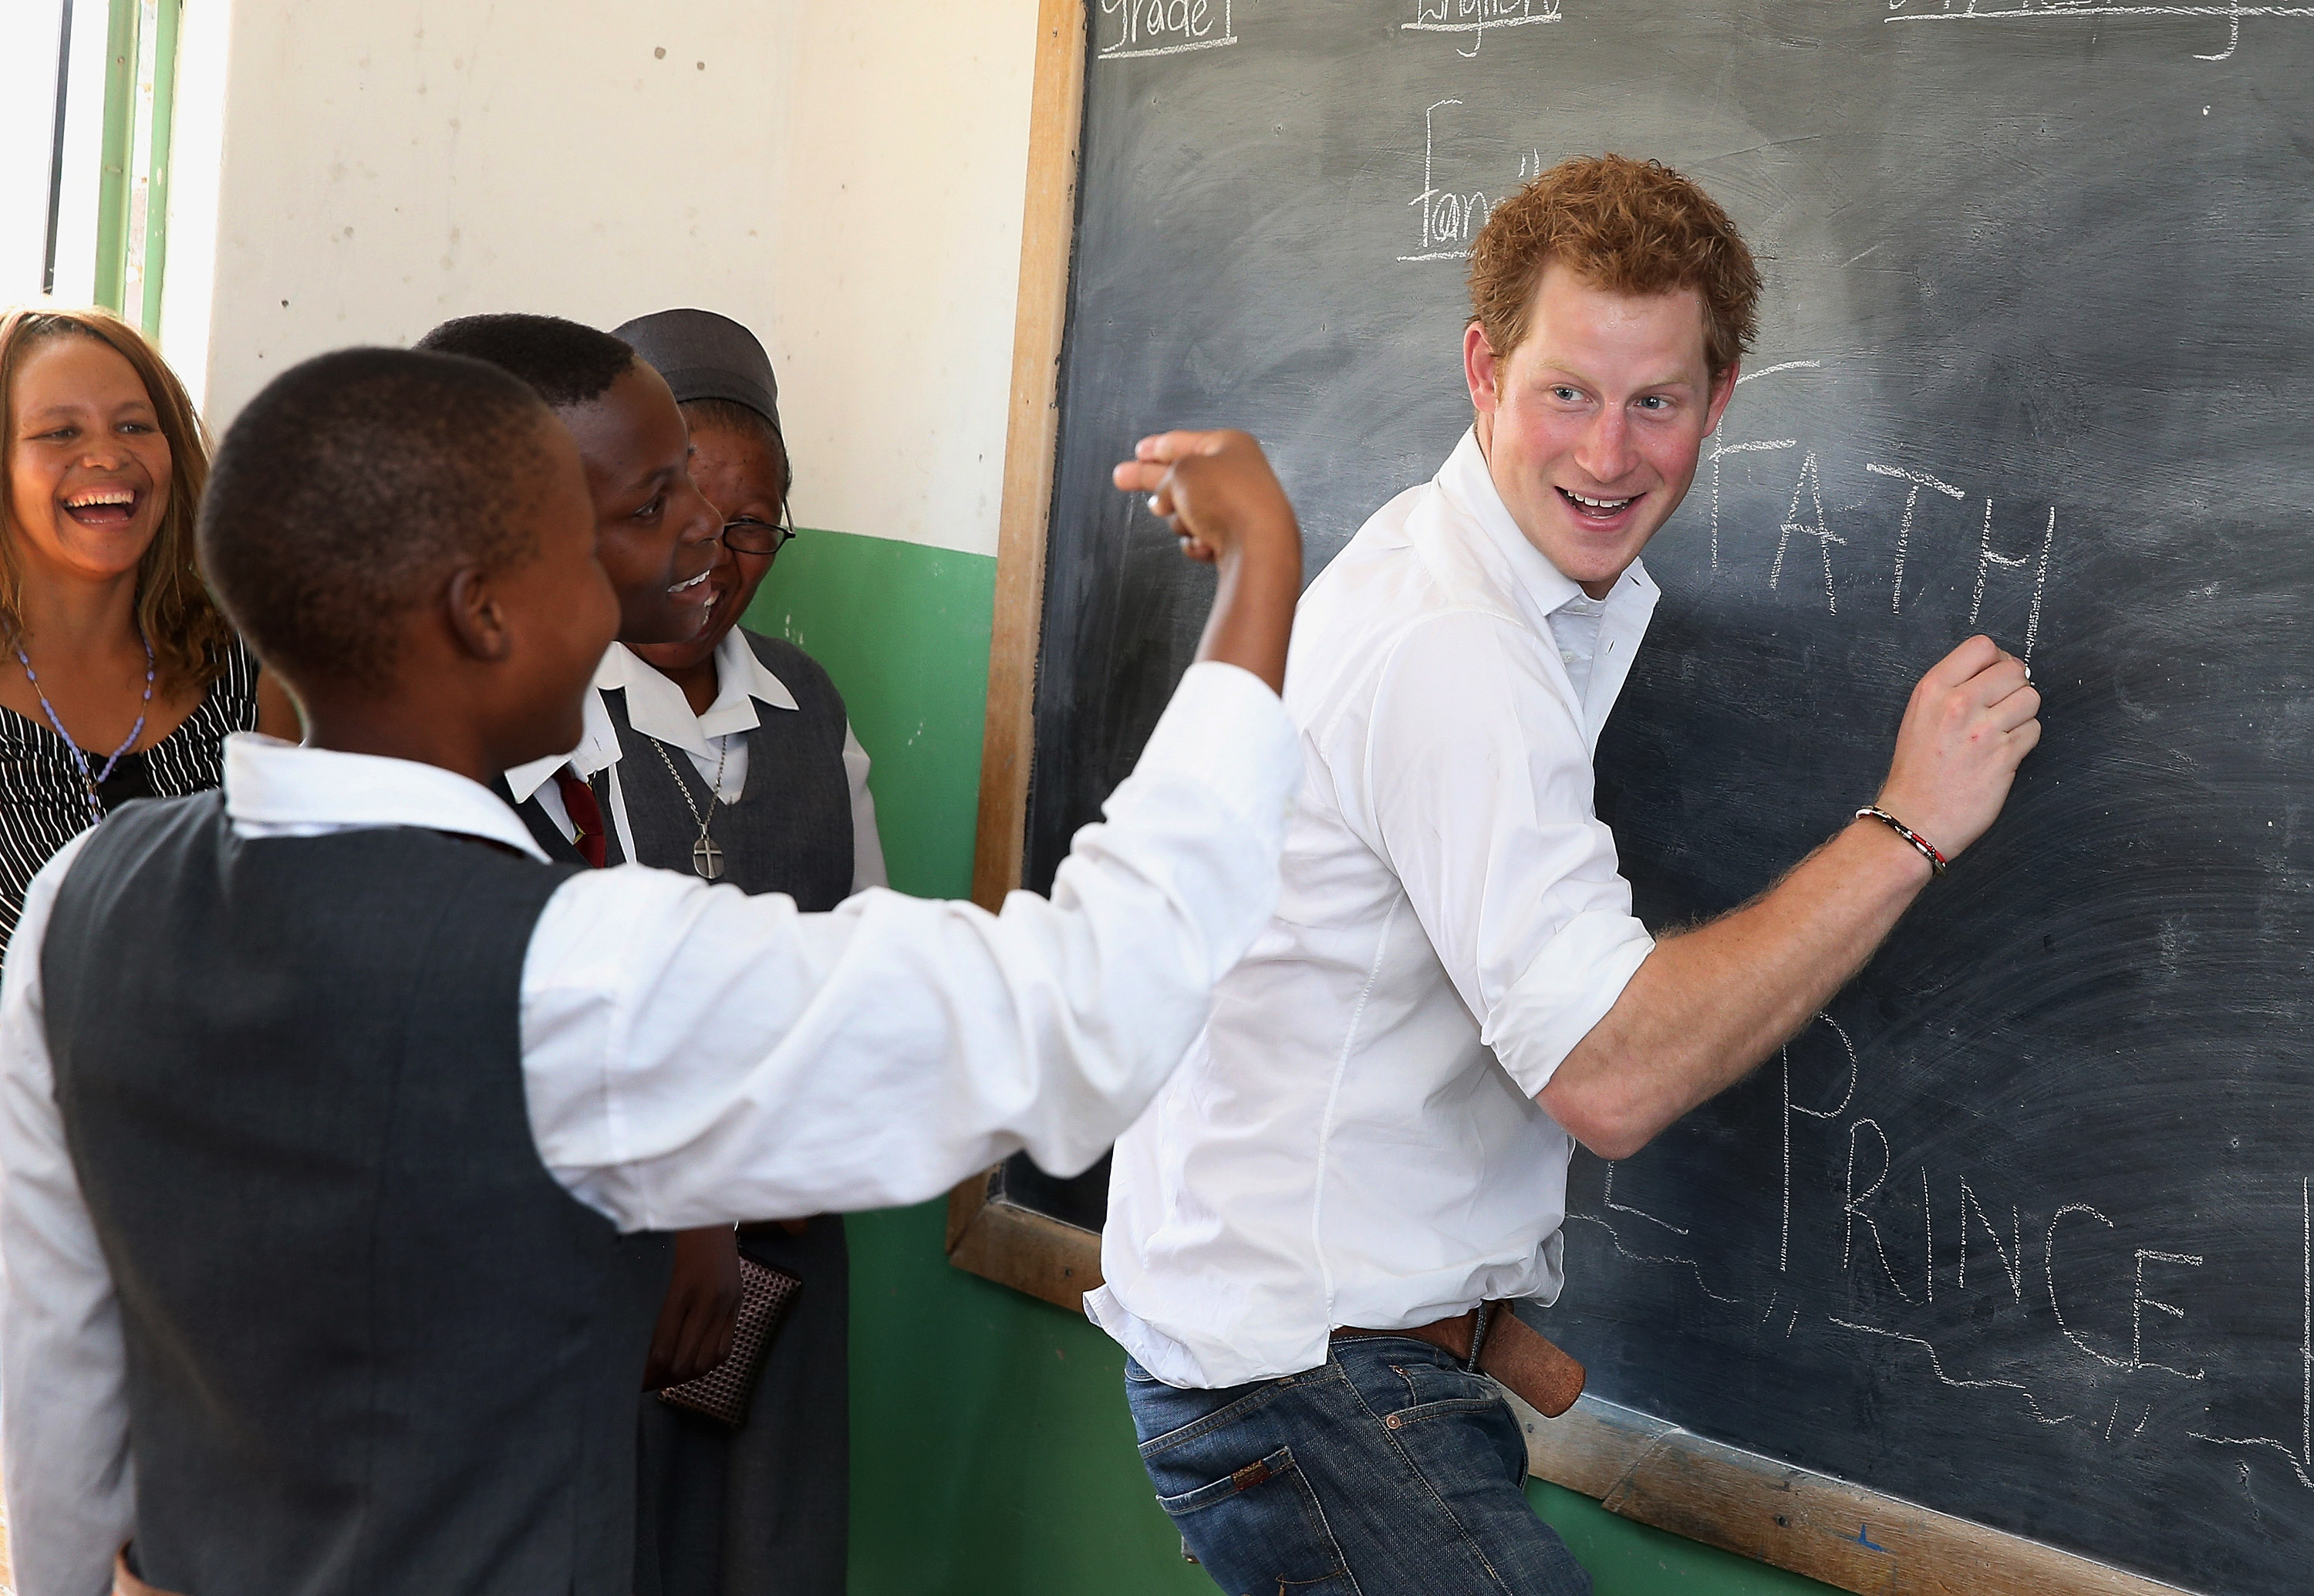 Prince Harry learned sign language.